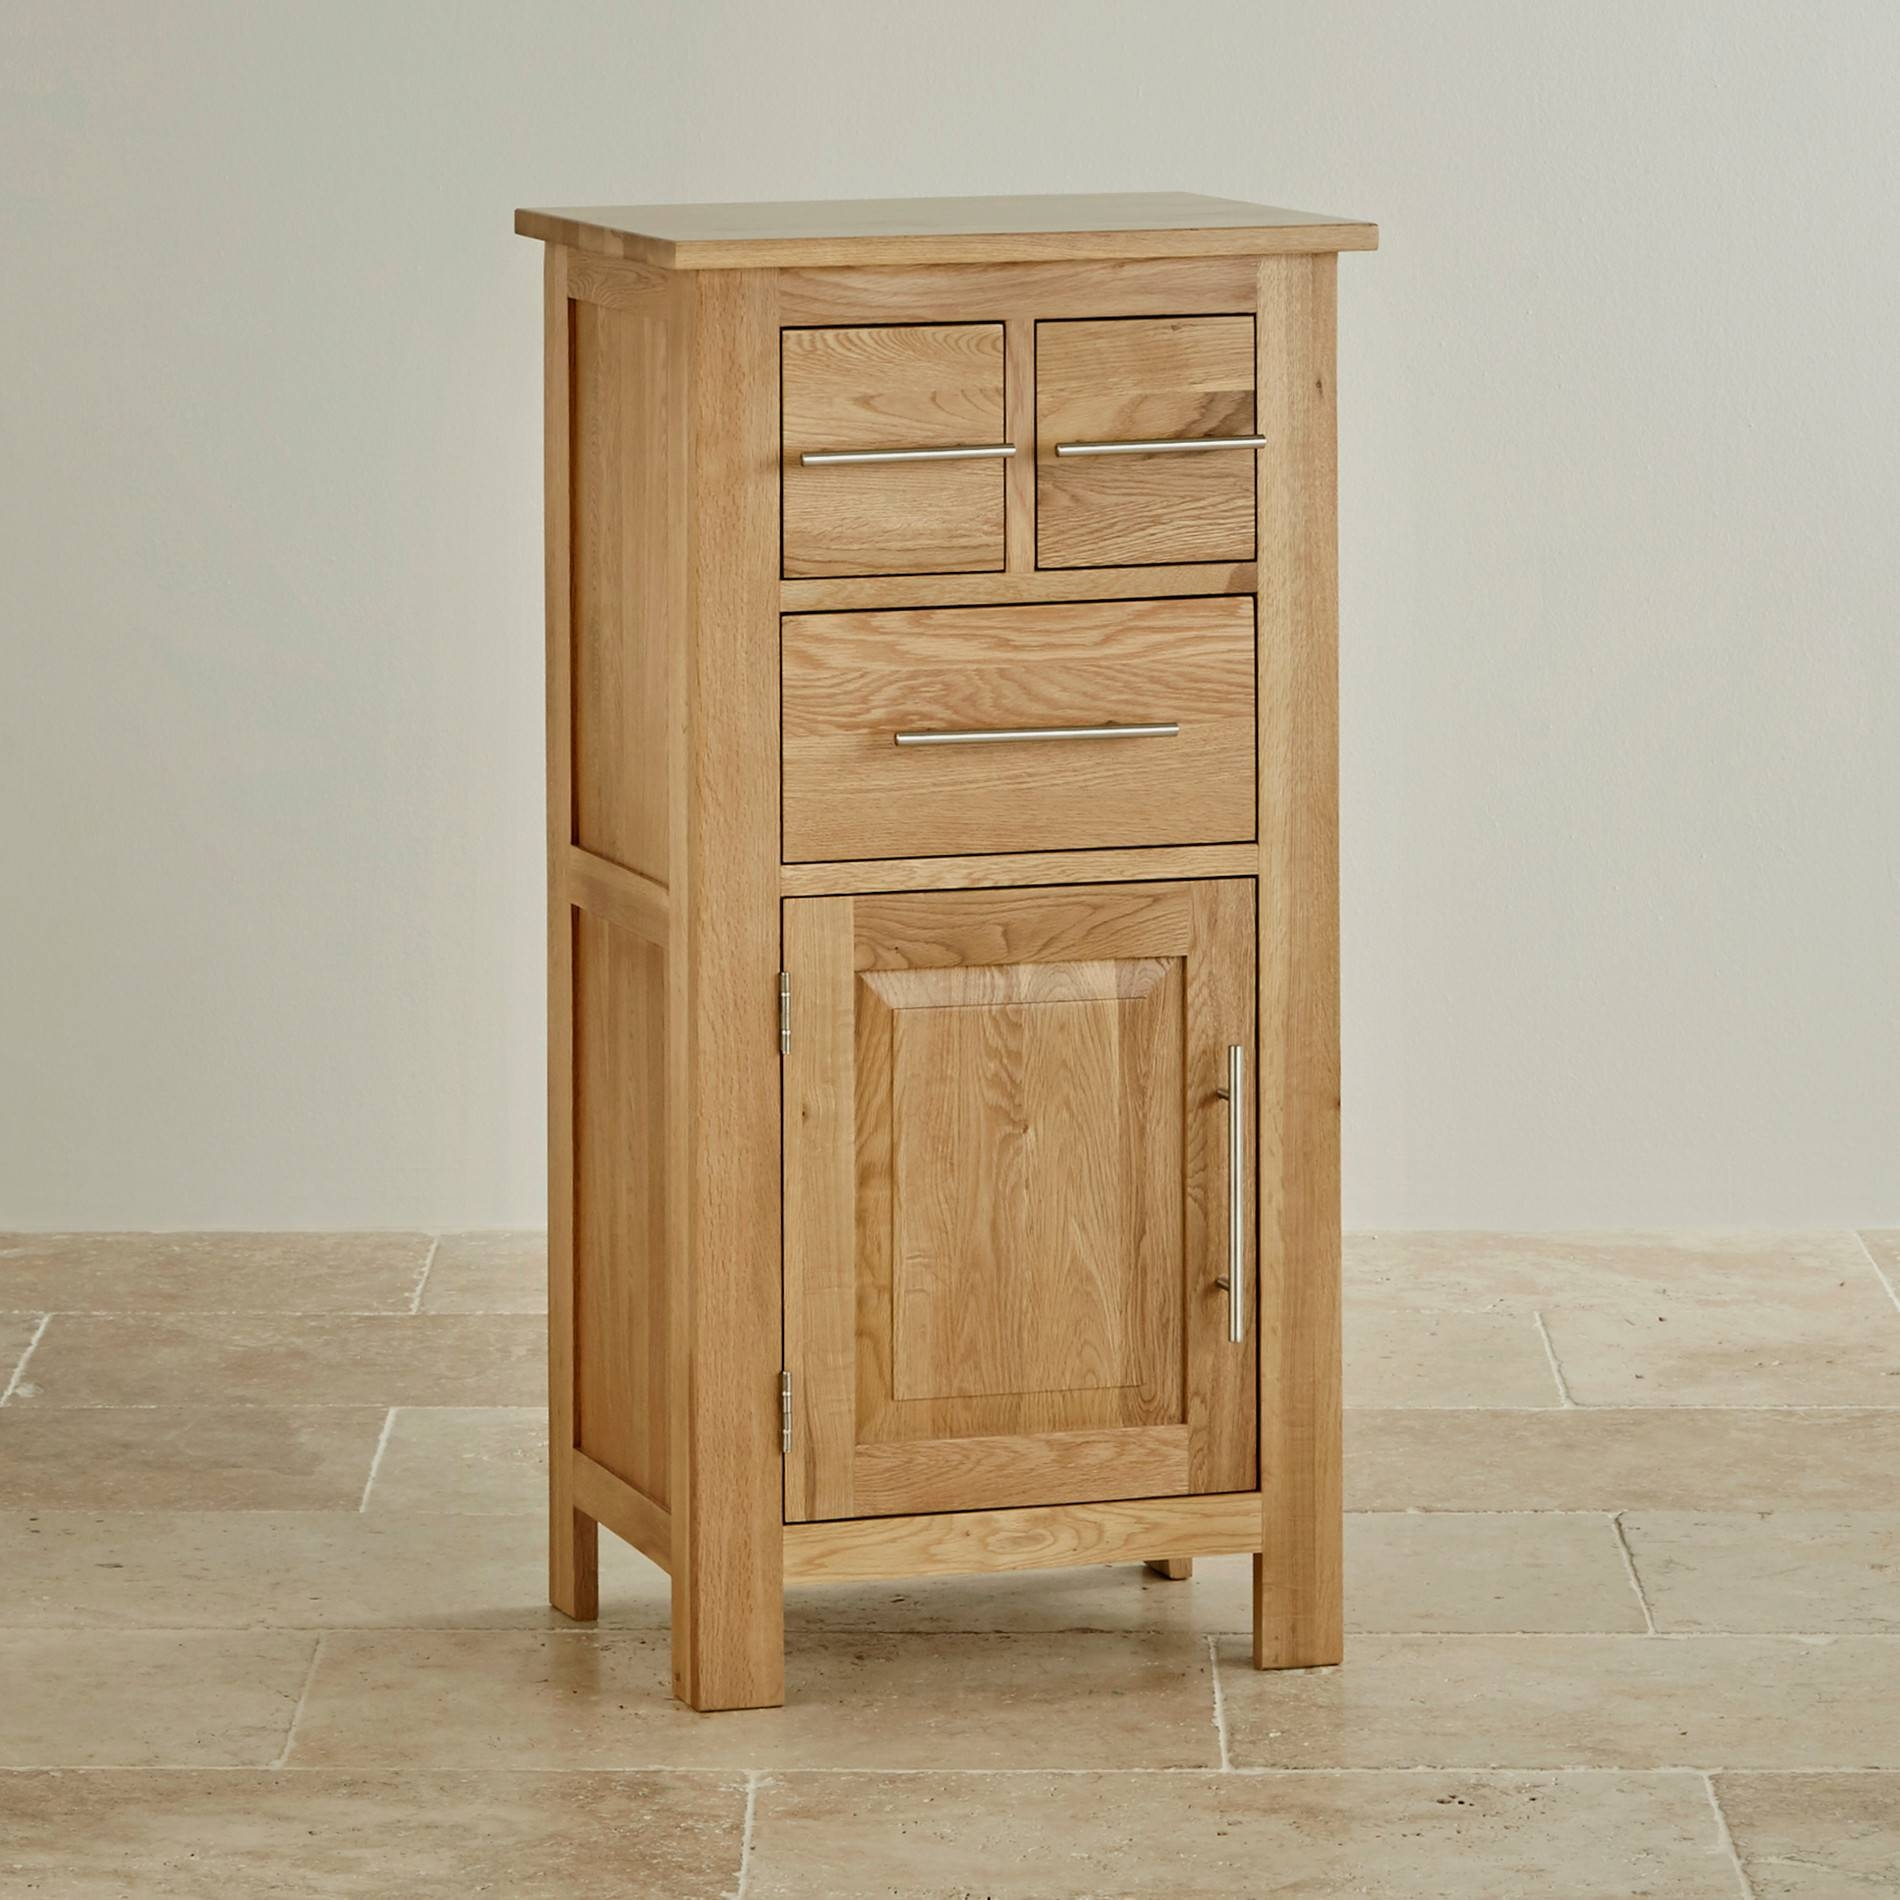 Rivermead Natural Solid Oak Storage Unitoak Furniture Land intended for Single Oak Wardrobes With Drawers (Image 11 of 15)